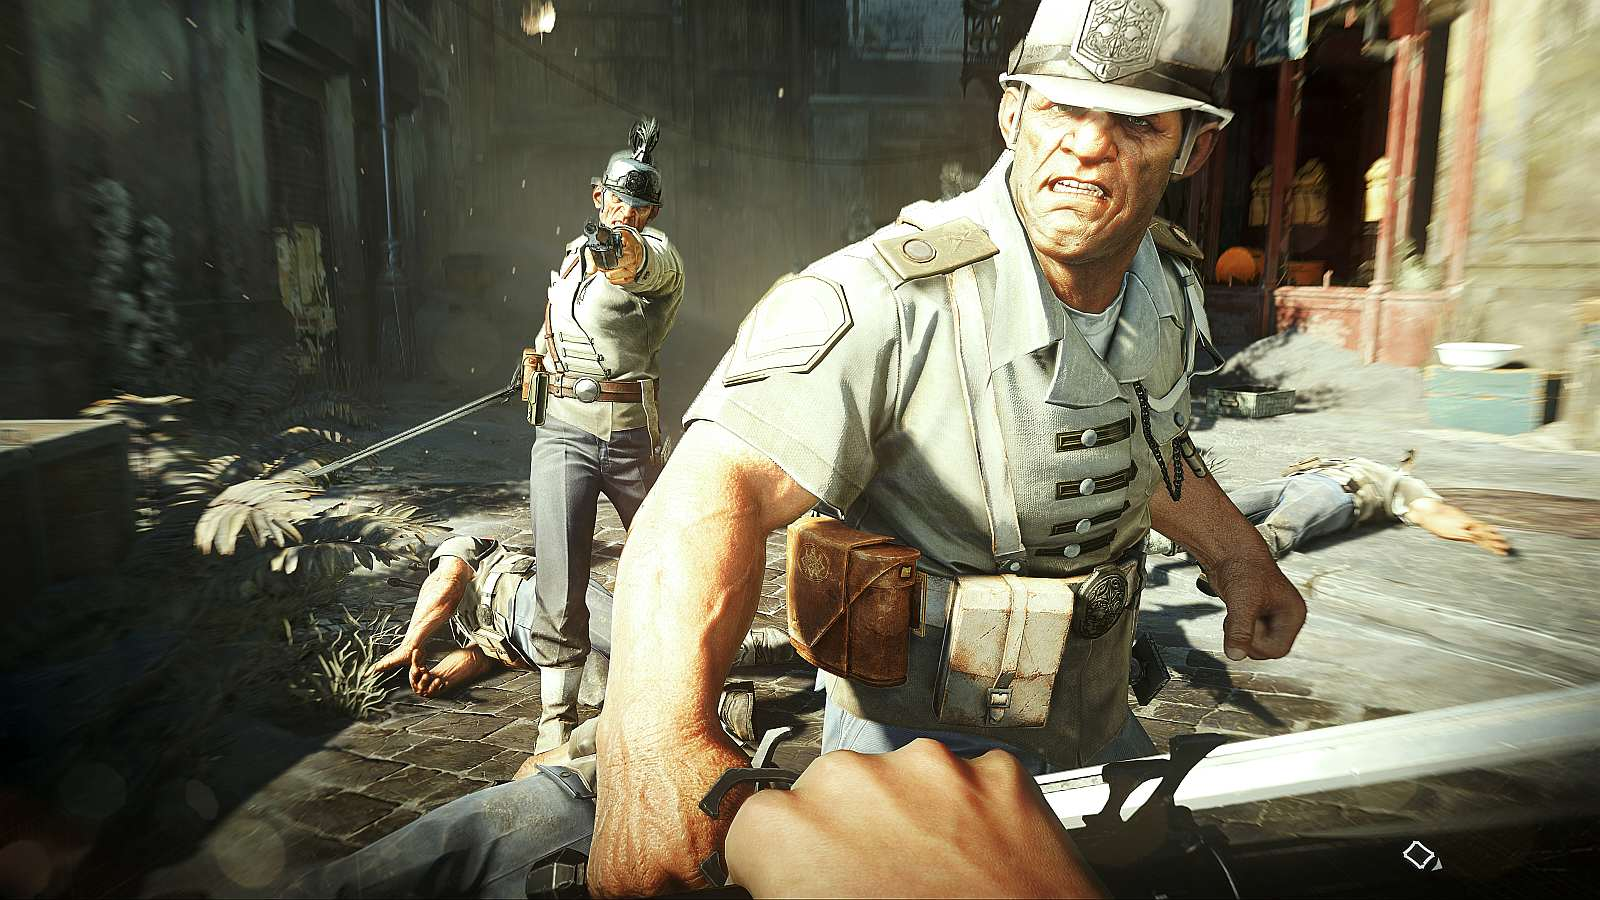 eIdwWxs Check Out These Gorgeous New Dishonored 2 Screens